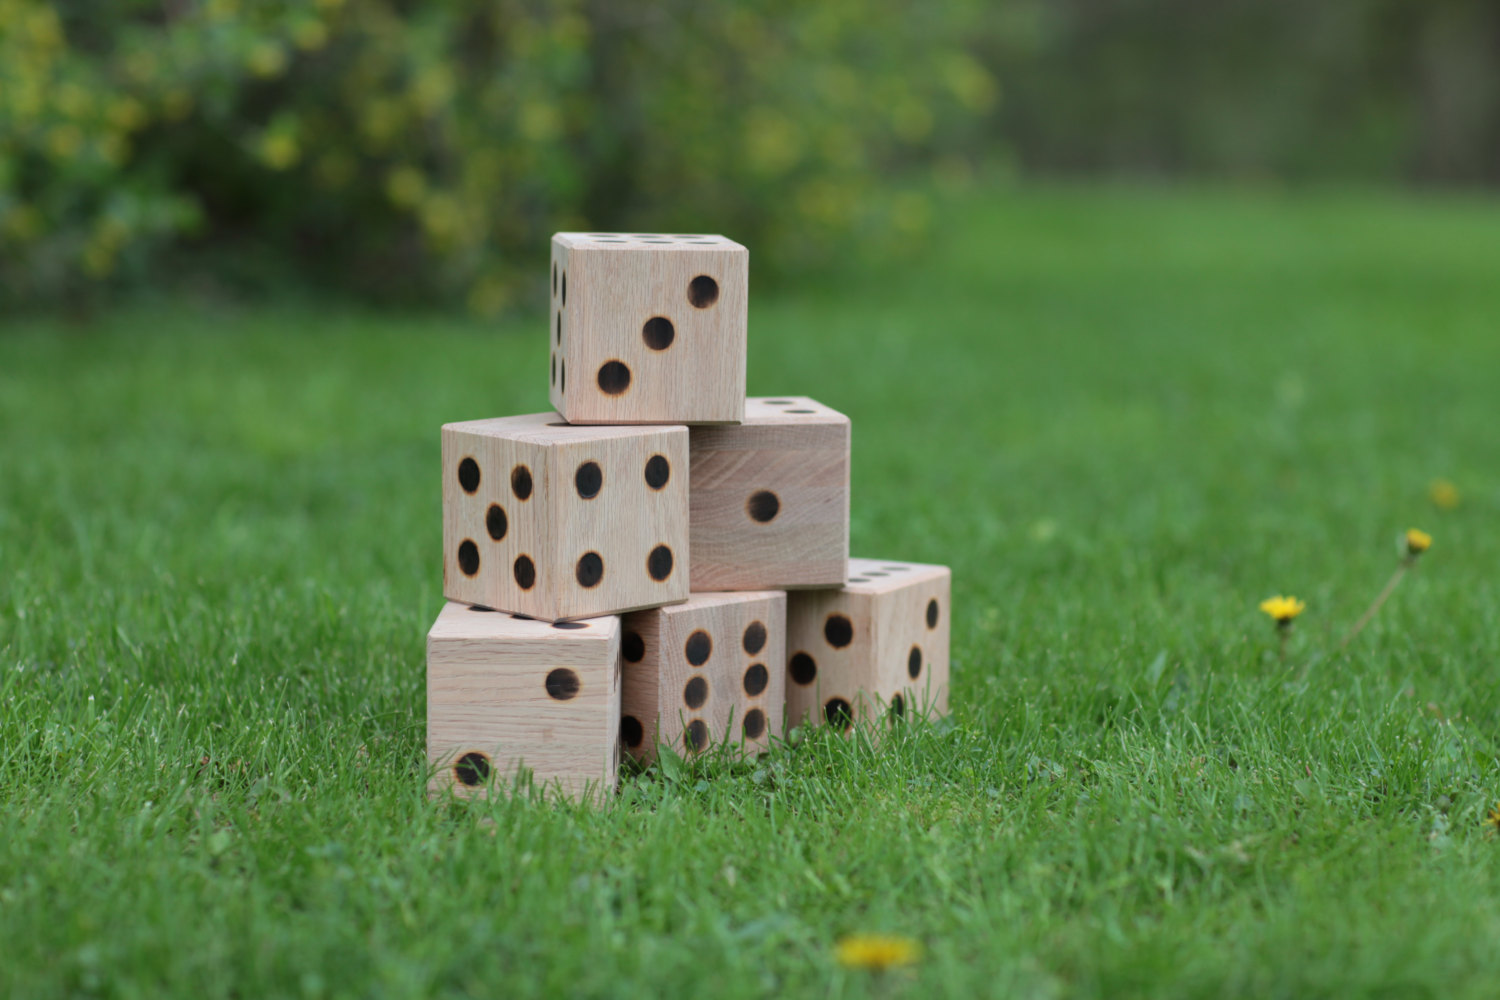 Giant Wooden Lawn Dice Perfect Choice For Parties And Events